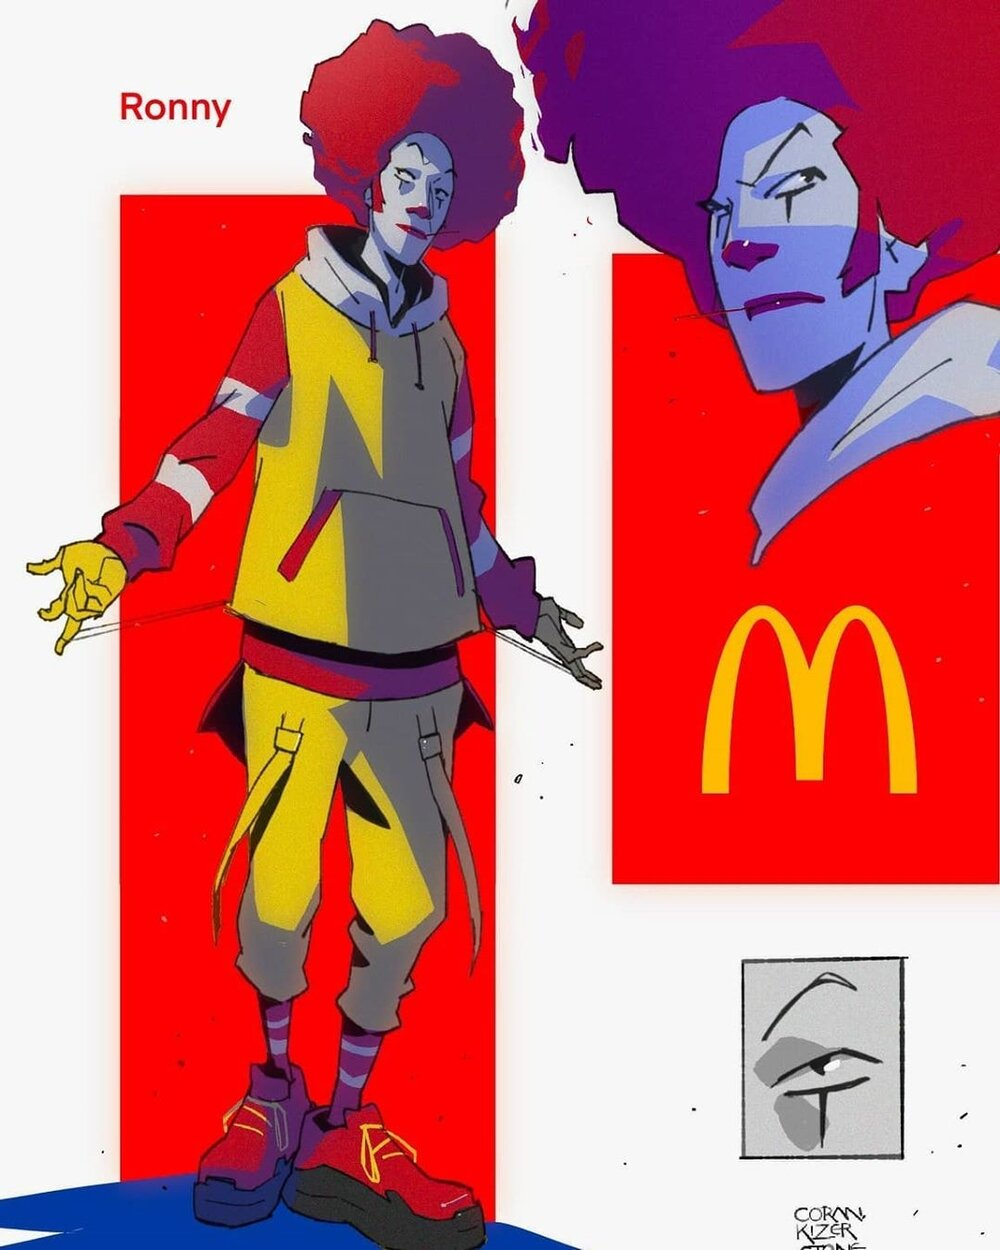 fast-food-mascots-redesigned-as-badass-animated-style-characters1.jpg